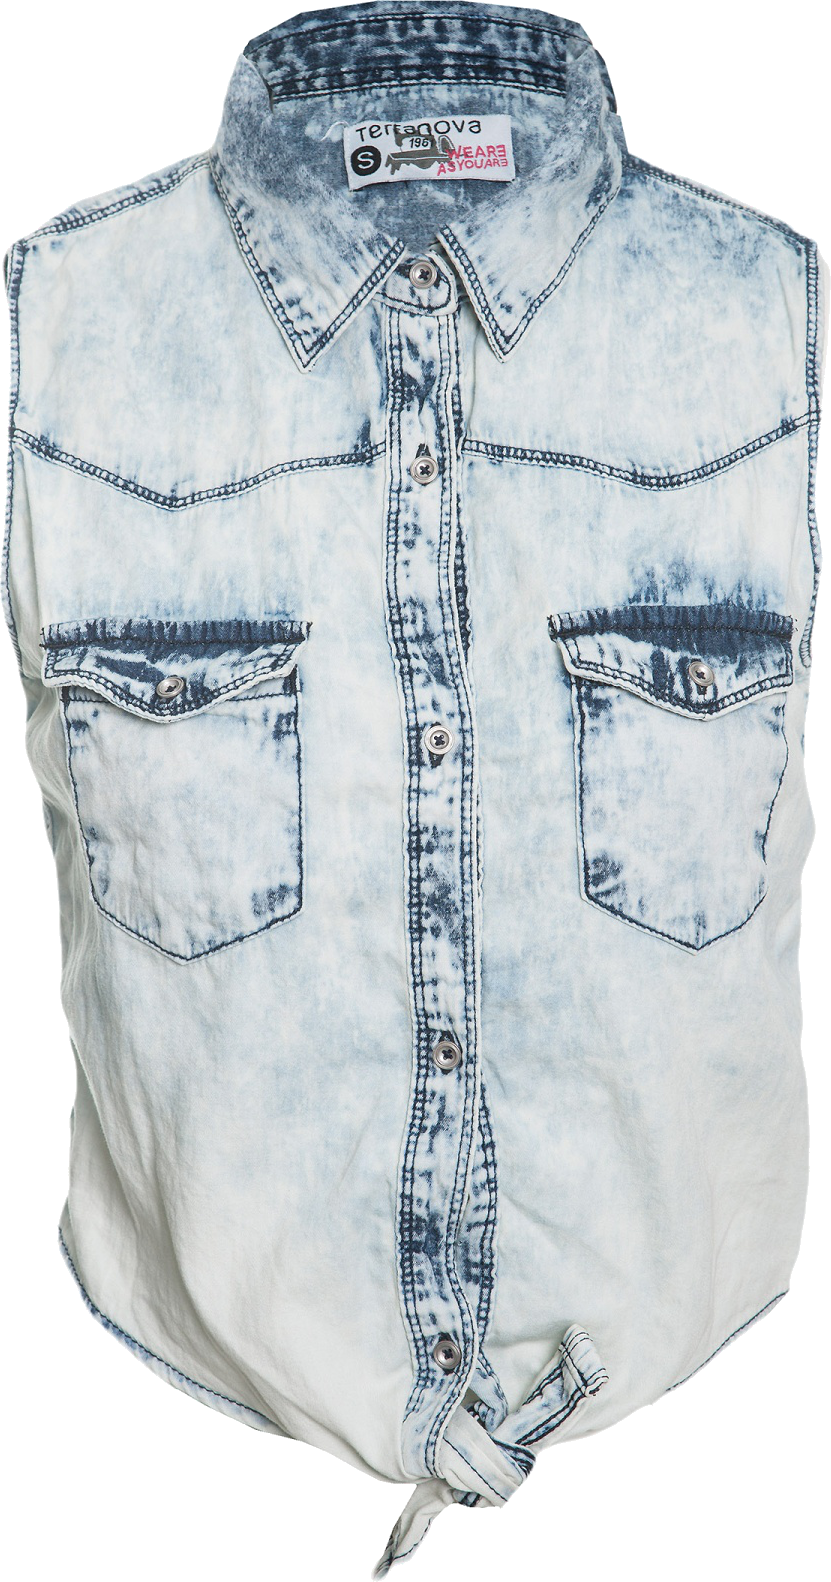 DENIM SHIRT WITH KNOT